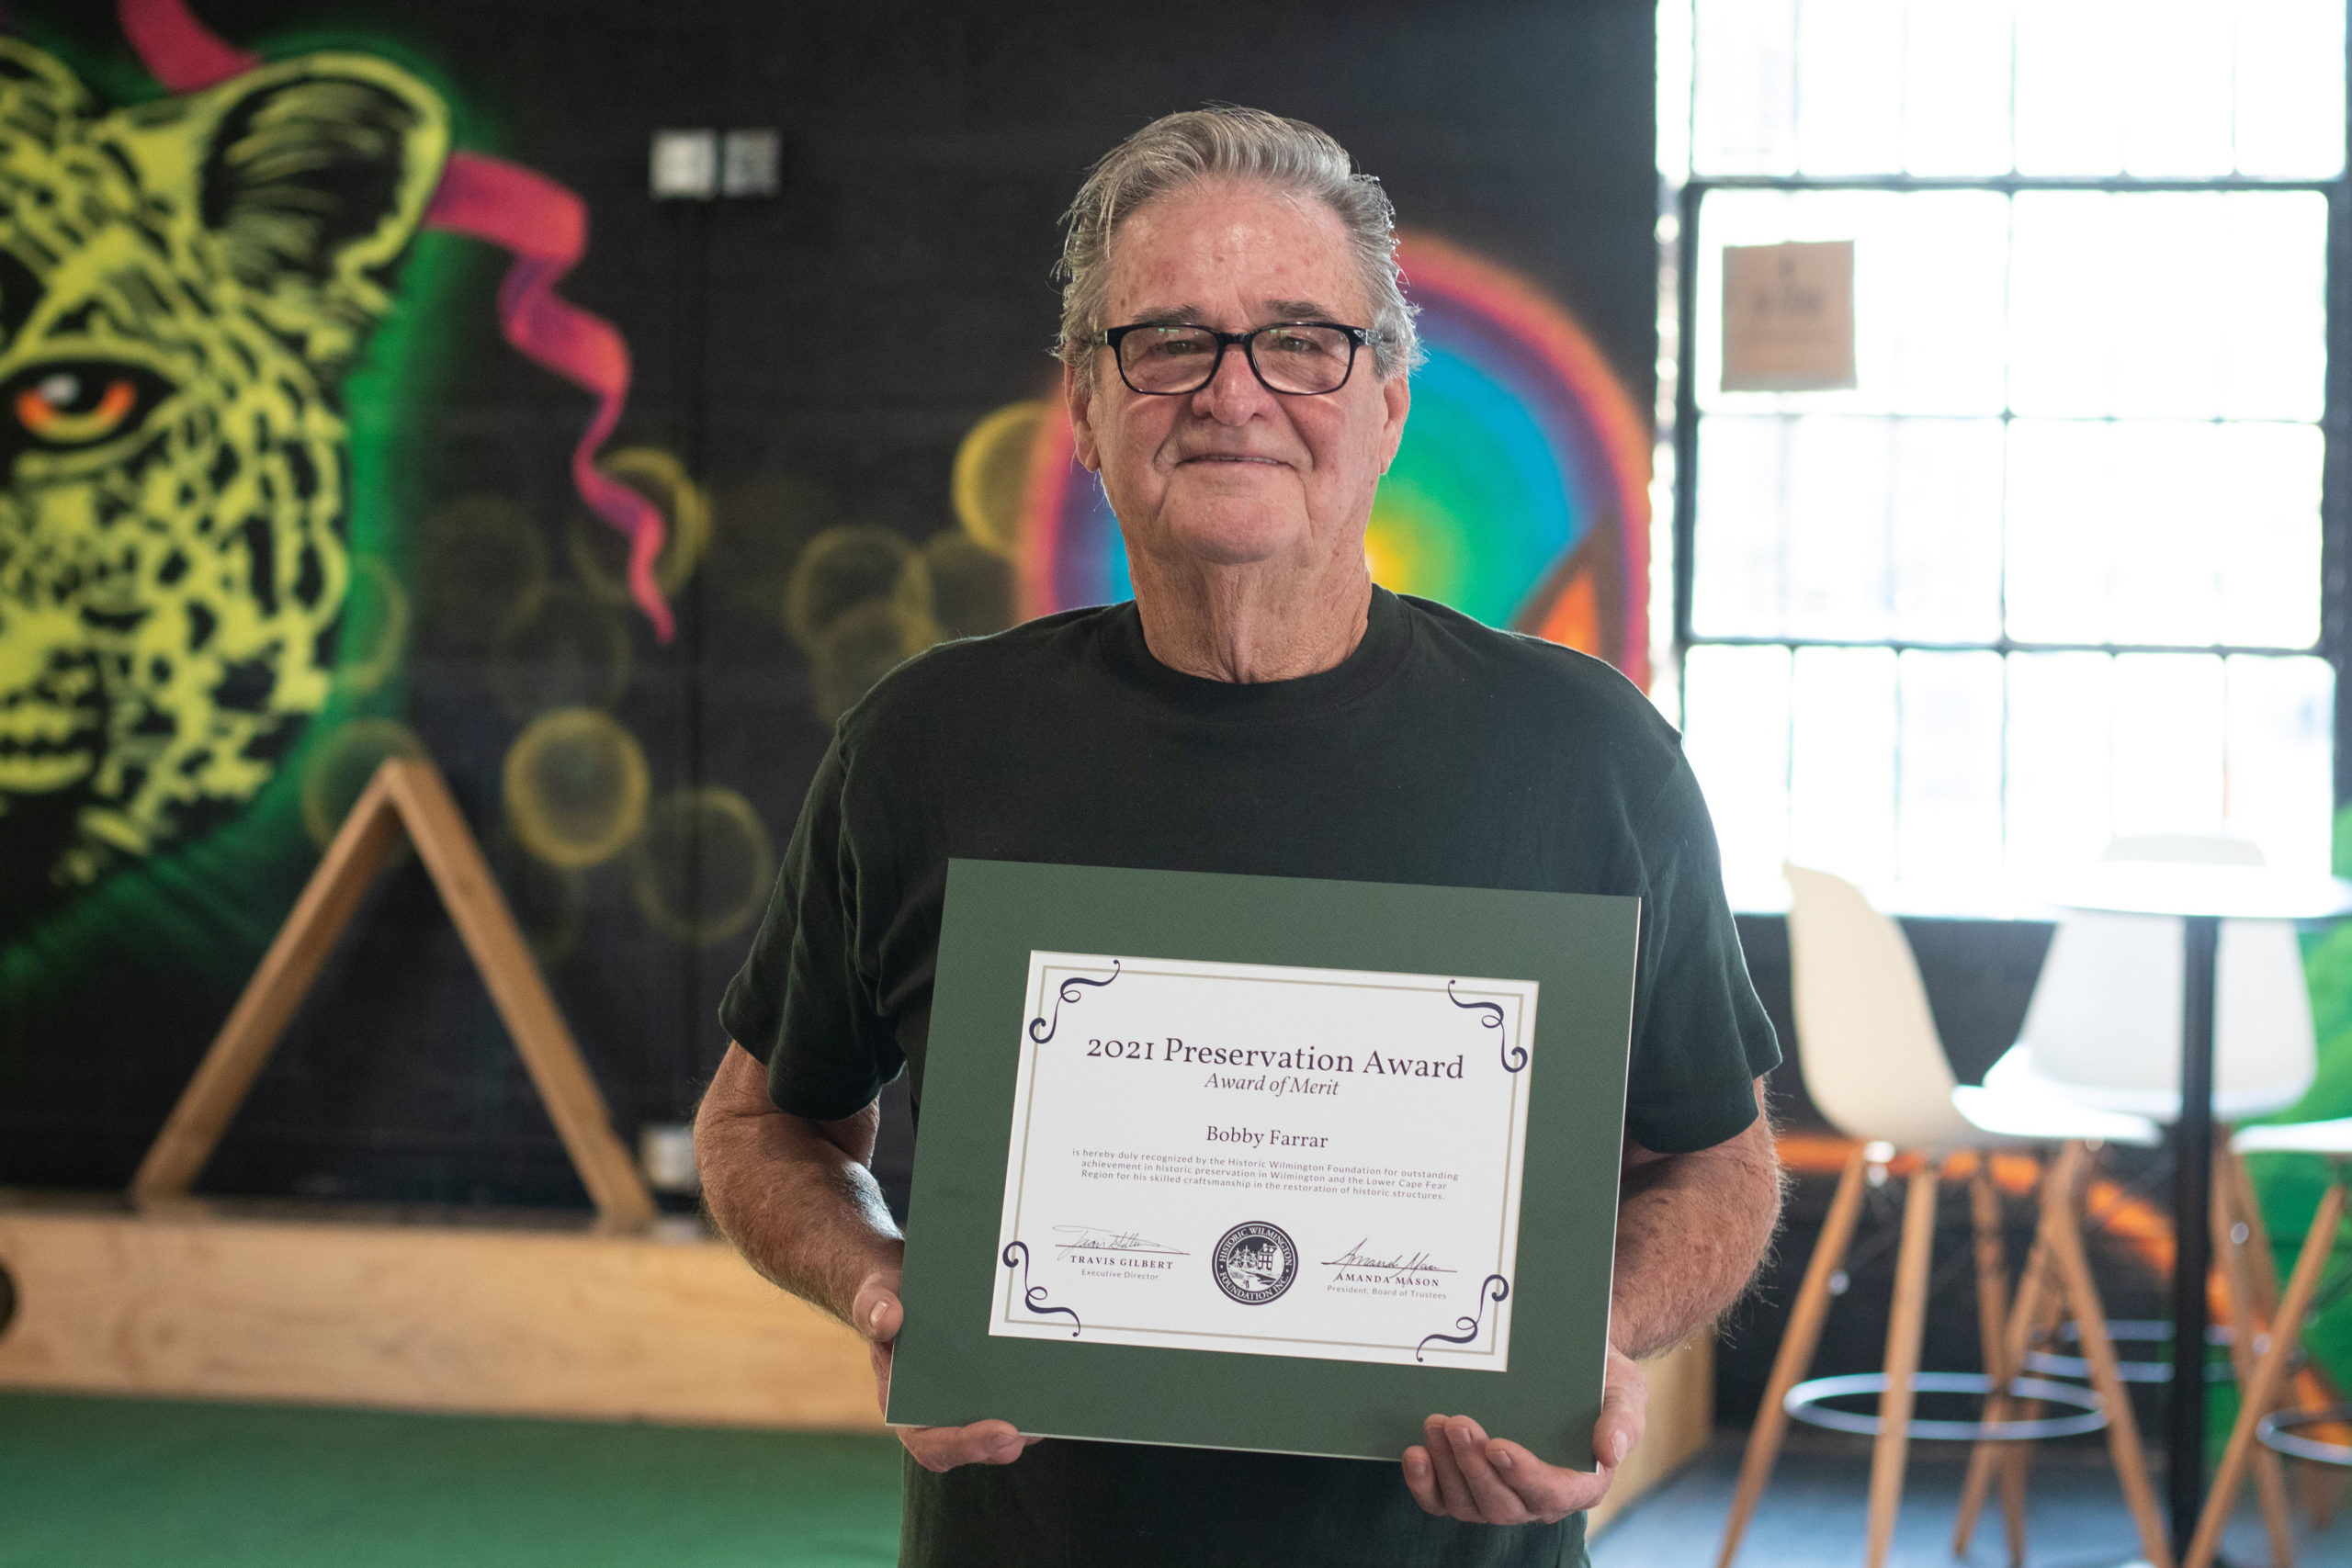 Bobby Farrar won this year's Award of Merit! His exceptional craftsmanship helped preserve many historic buildings in the Lower Cape Fear region, including the Lazarus-Divine-Hill House, Brink-Goodman House, and Rush-Stelijes Store.